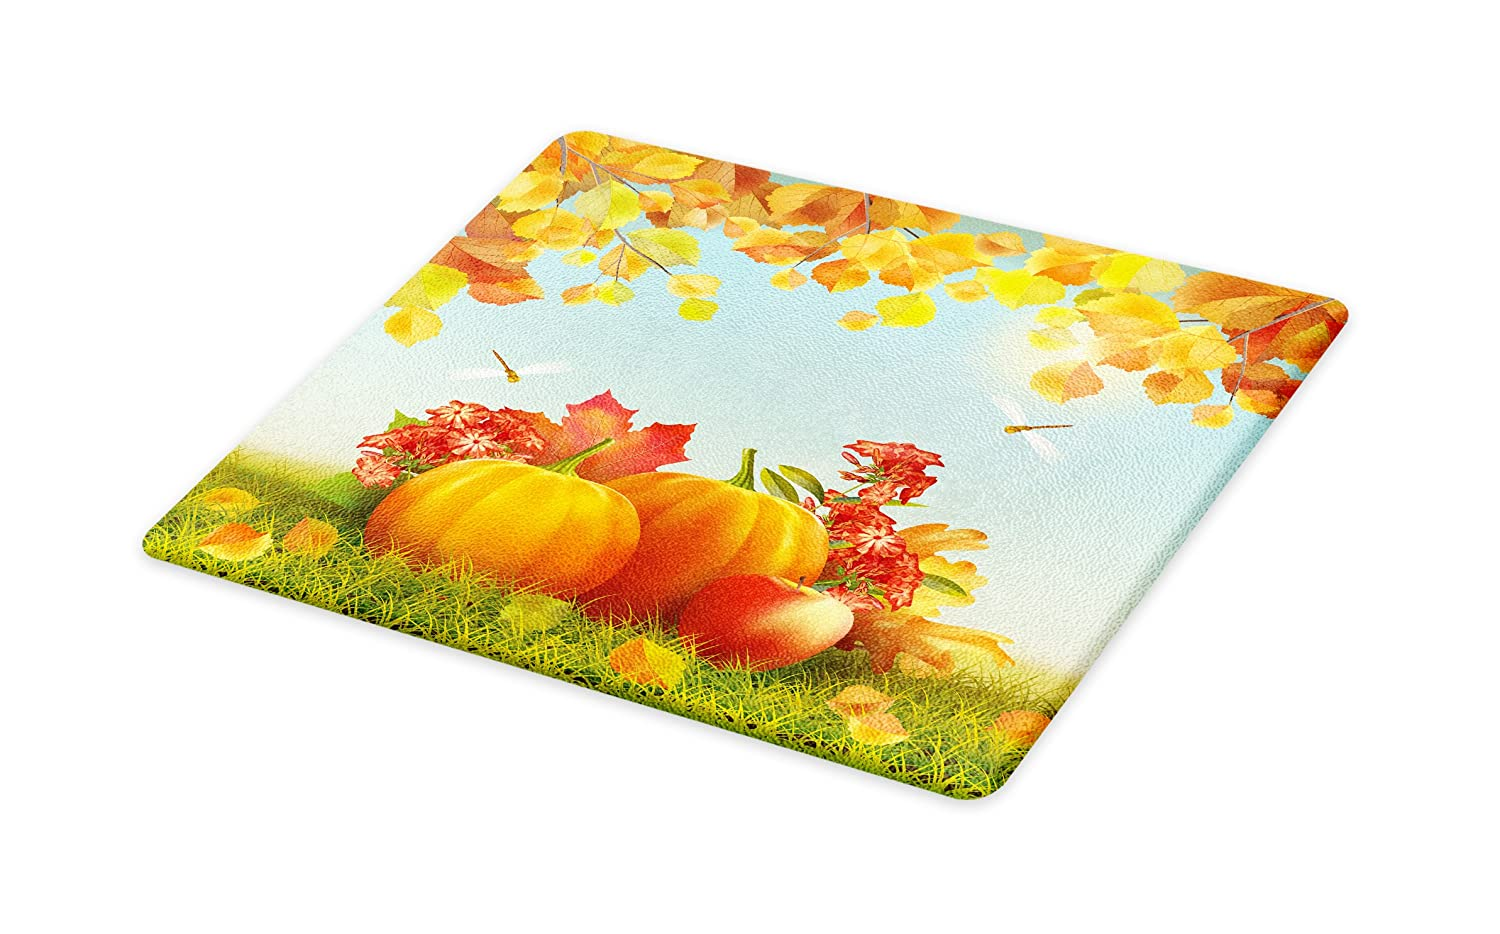 Multicolor Small Size Decorative Tempered Glass Cutting and Serving Board Lunarable Hummingbird Cutting Board Colorful Birds with Foliage and Blossoming Iris Flowers Coming of the Spring